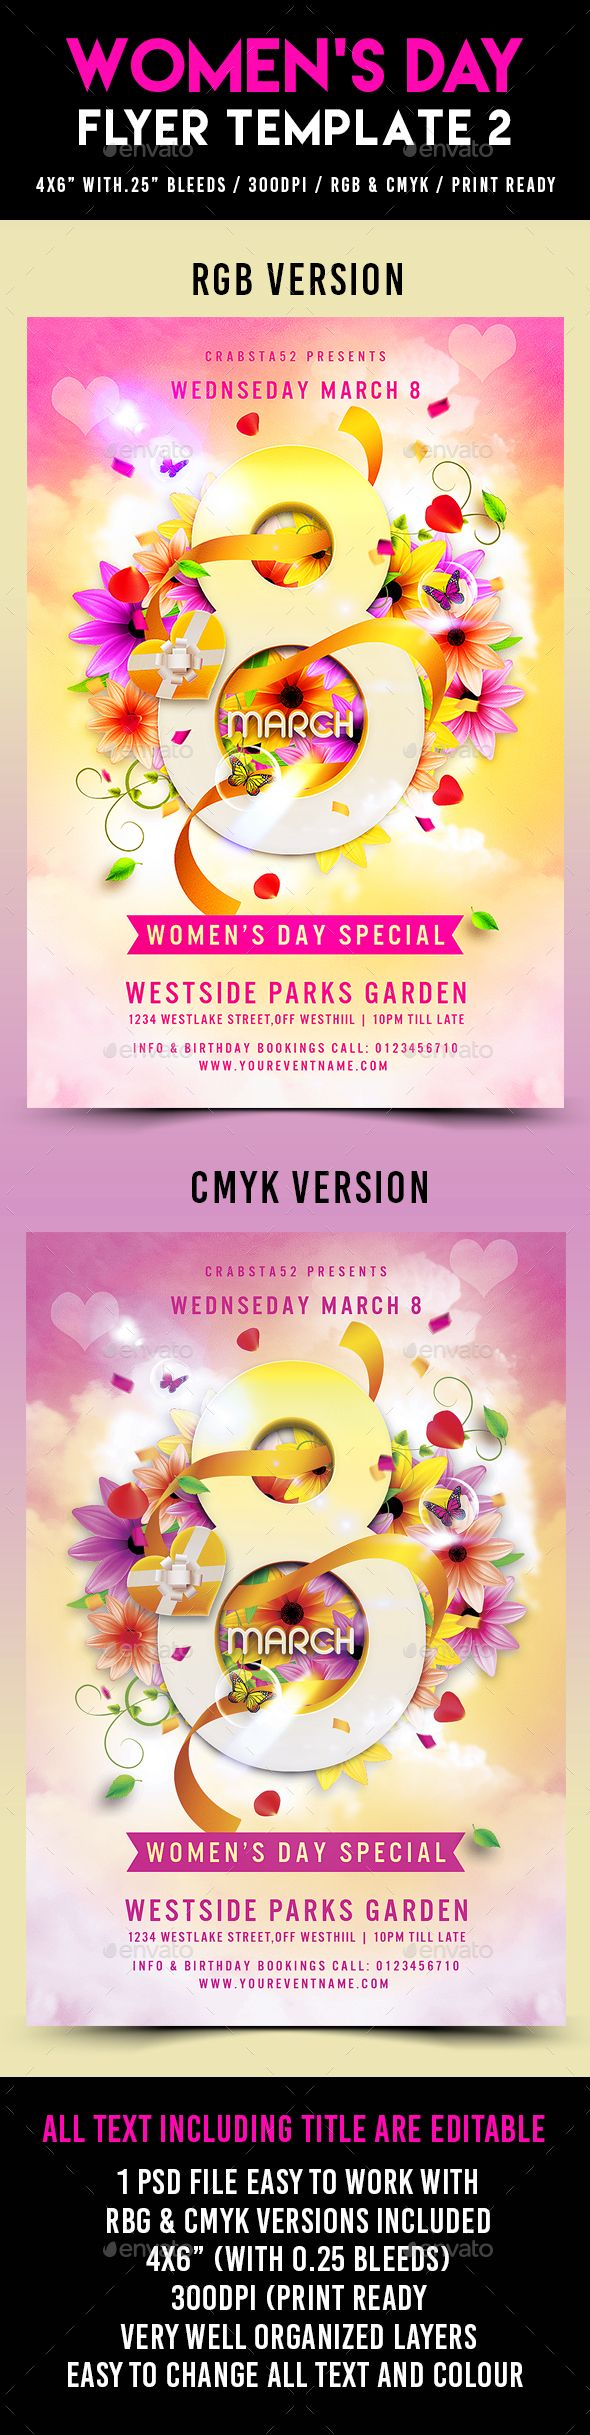 Women's Day Flyer Template PSD